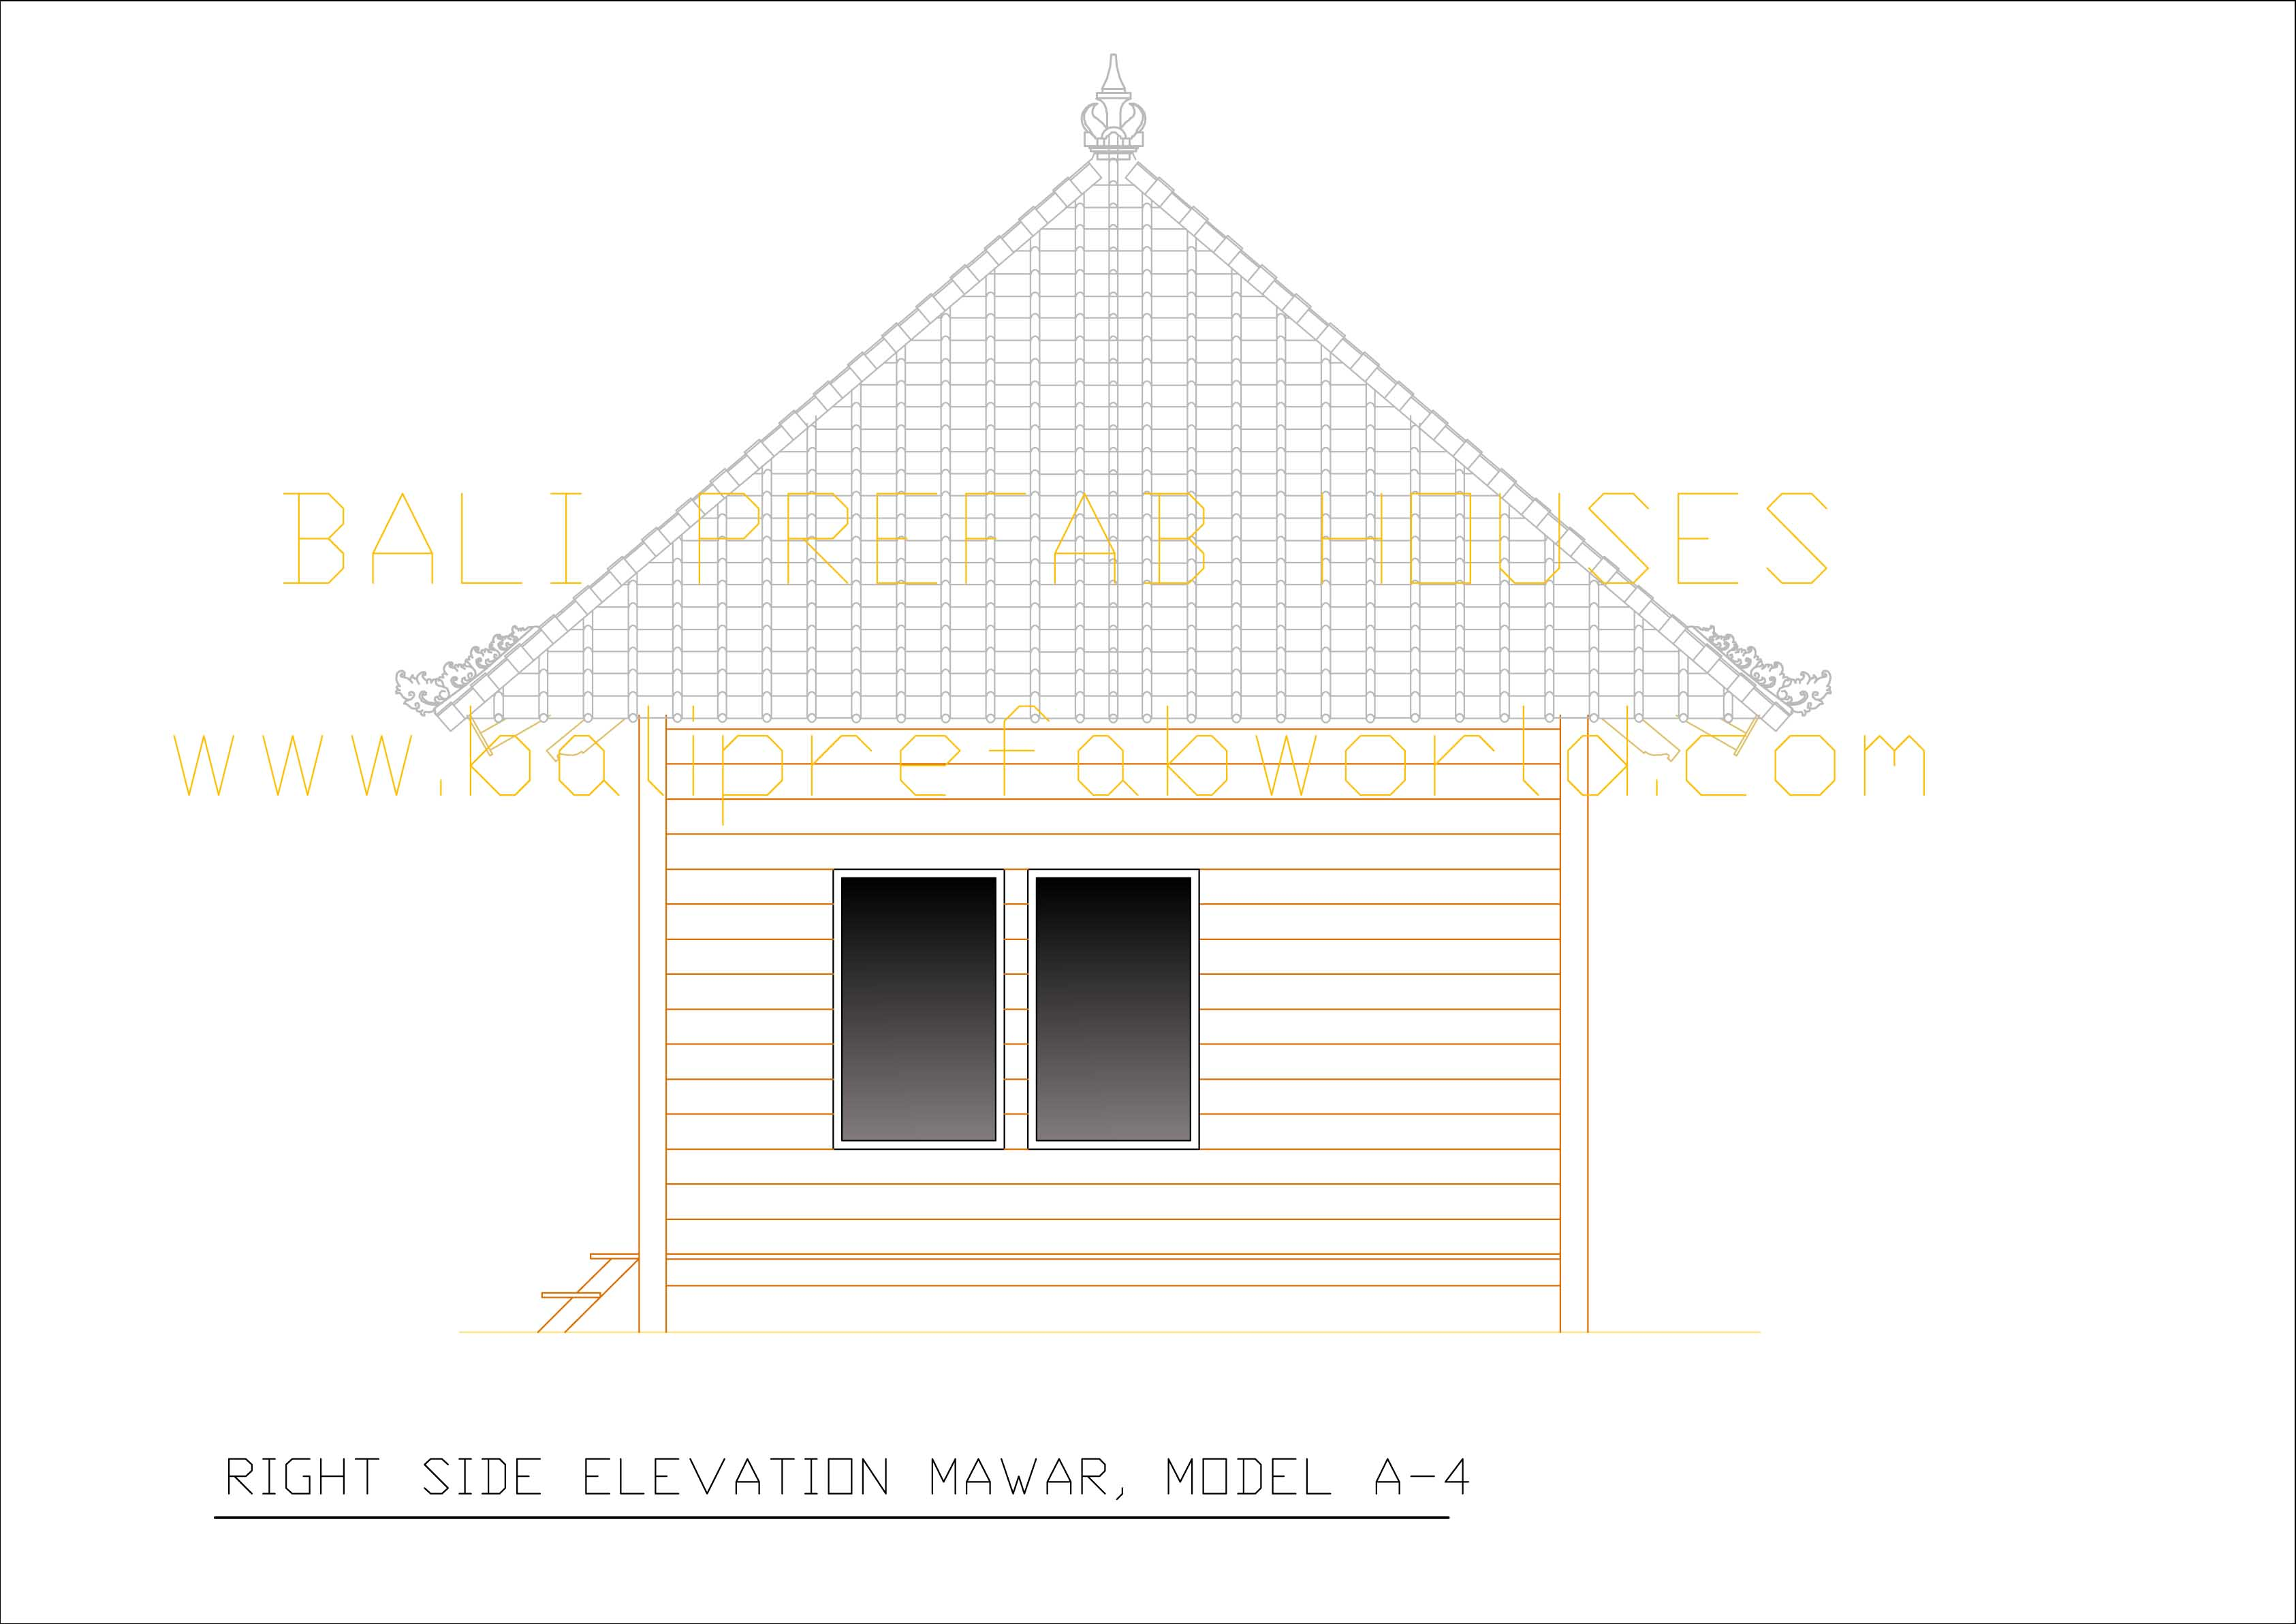 Mawar right side elevation